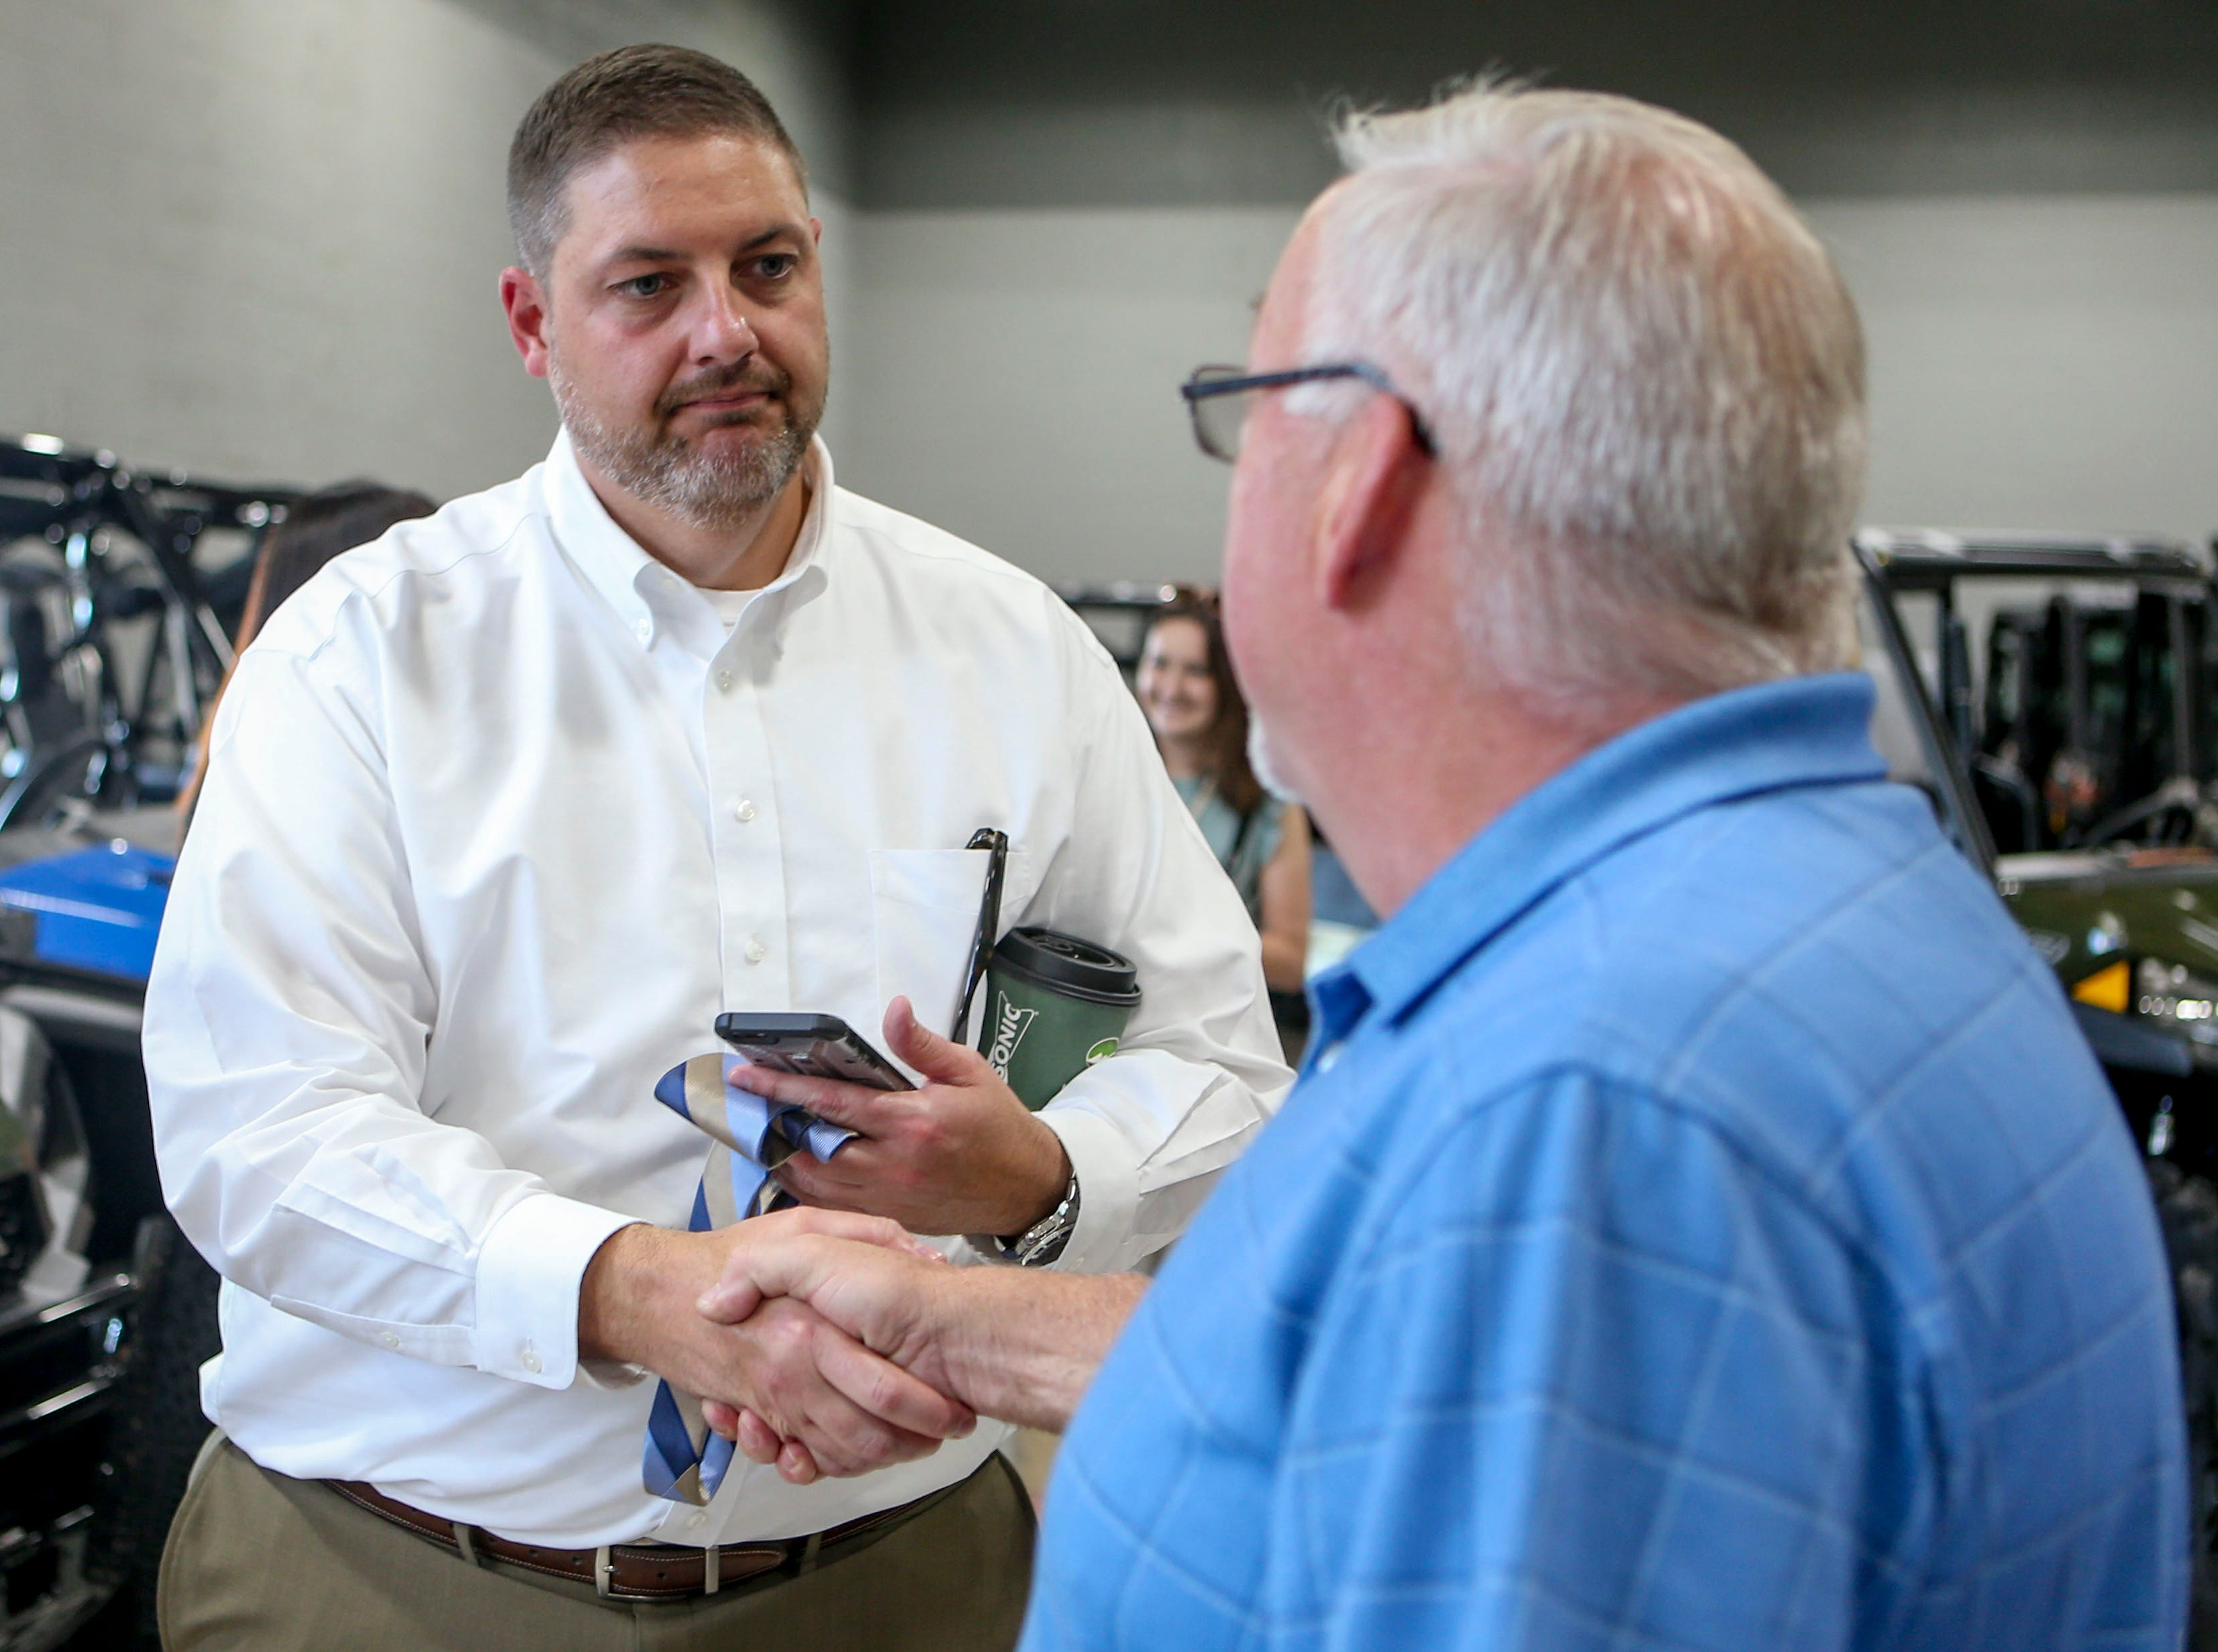 John Coleman, right, shakes the hand of and thanks John Miller, CEO of Lifeline Blood Services, left, who thanked him for his donation of blood at Bob's House of Honda in Jackson, Tenn., on Thursday, Sept. 20, 2018.